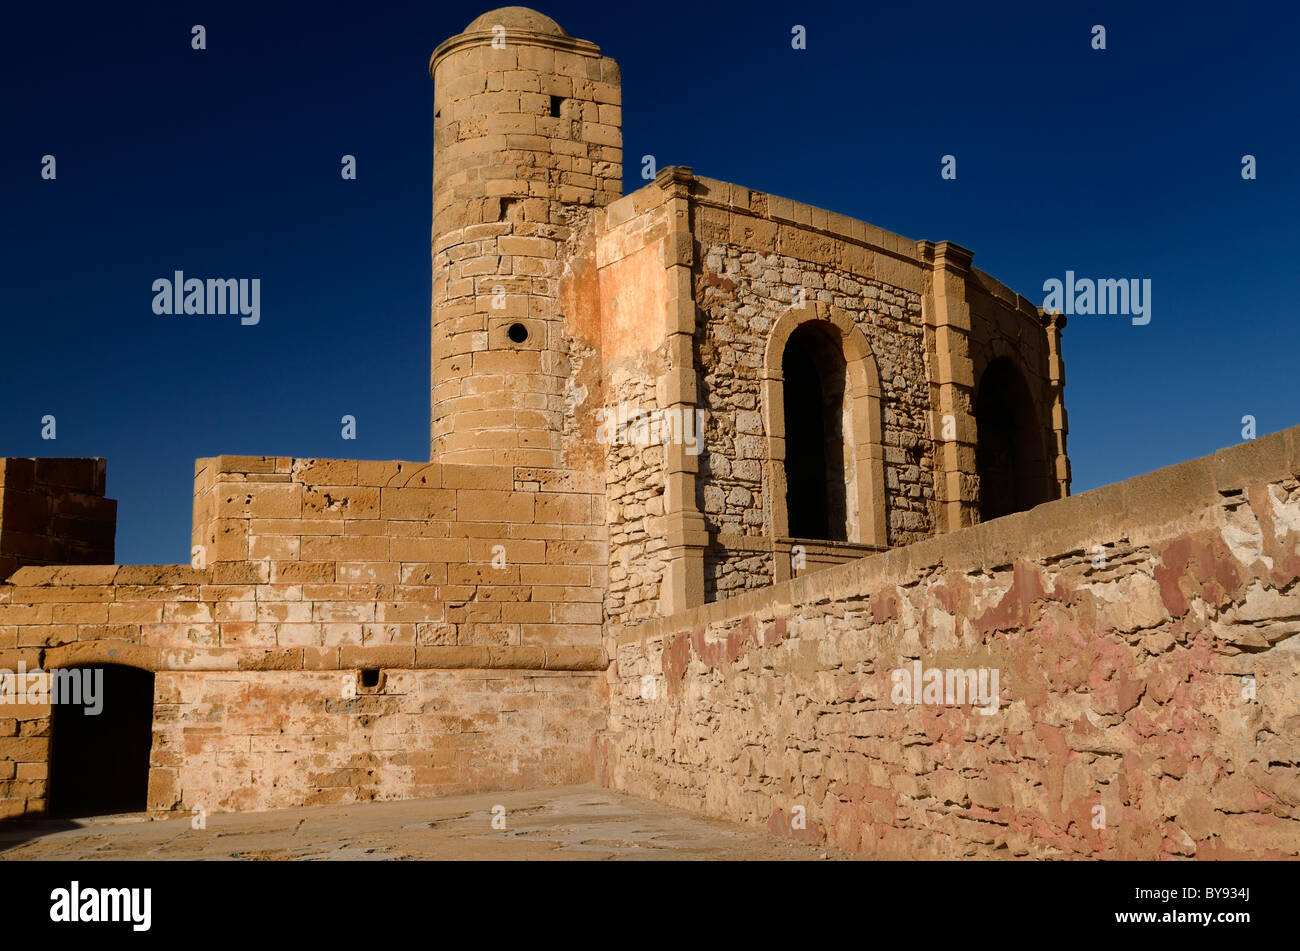 Ancient stone of Sqala de la Ville North Bastion on the rampart at Essaouira Morocco - Stock Image